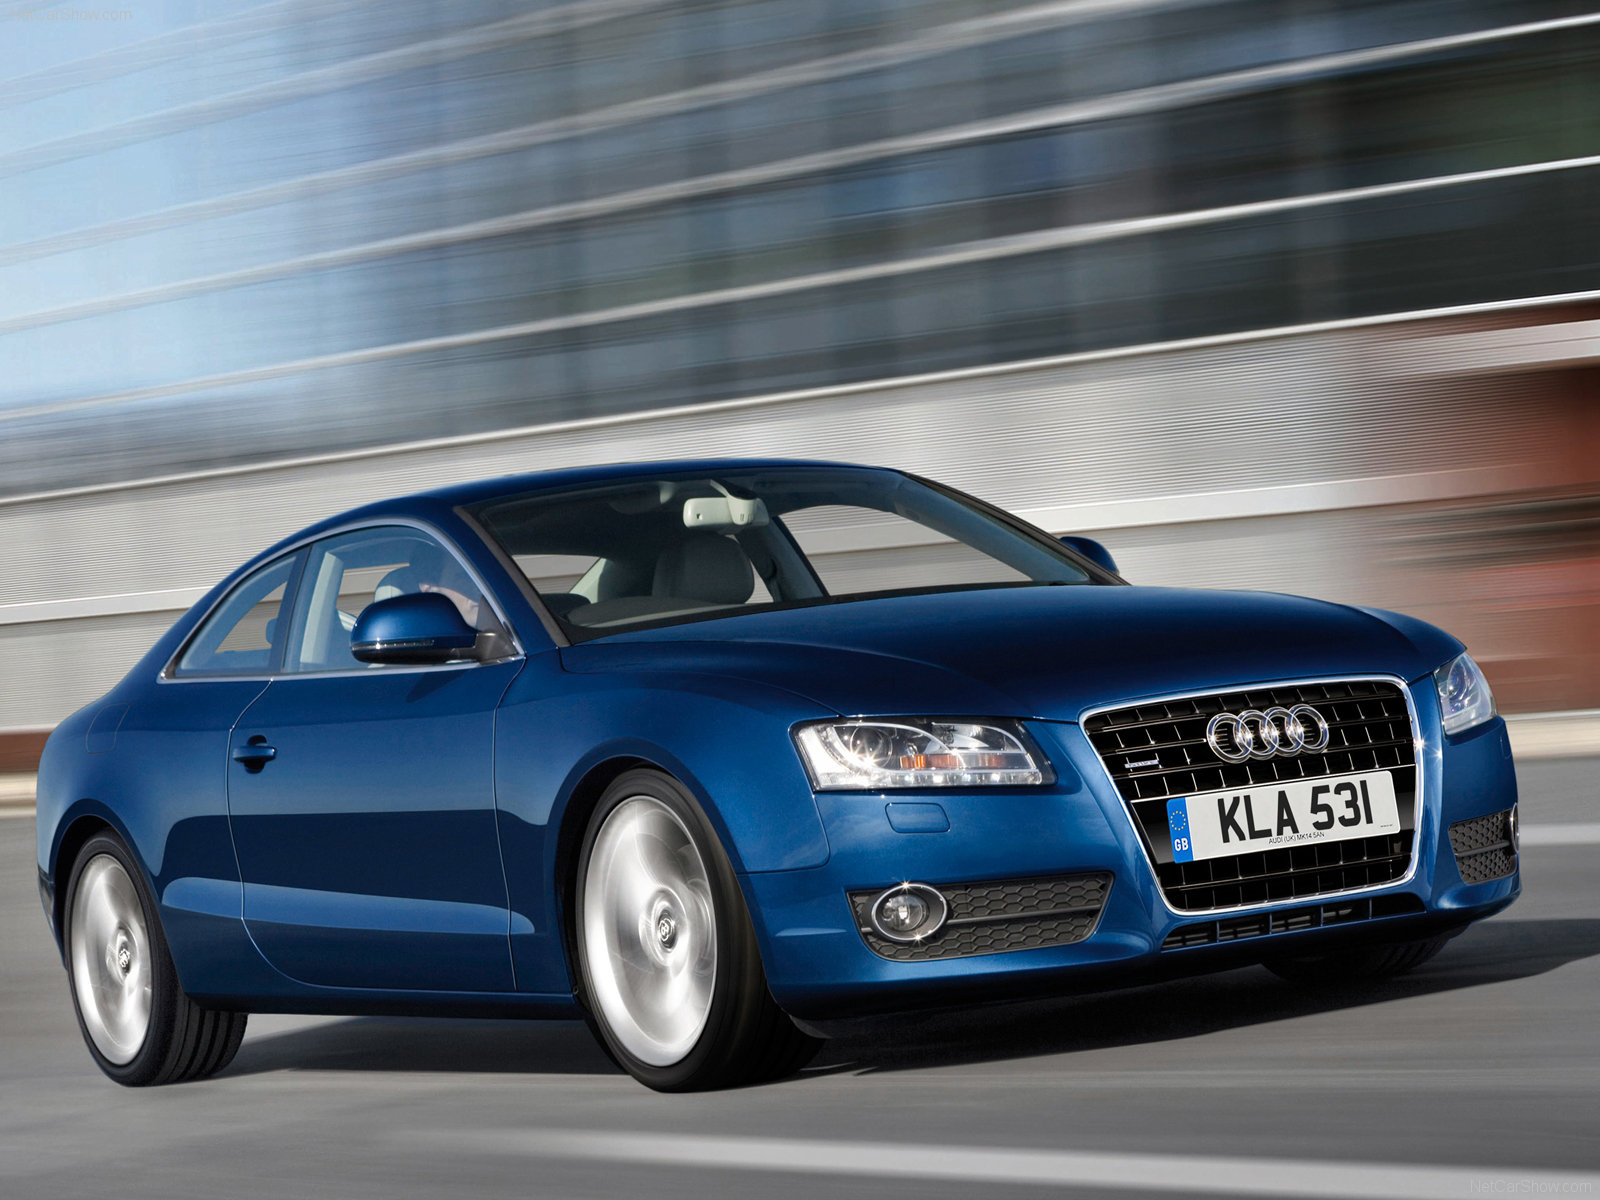 Audi A5 Picture 56129 Audi Photo Gallery Carsbase Com